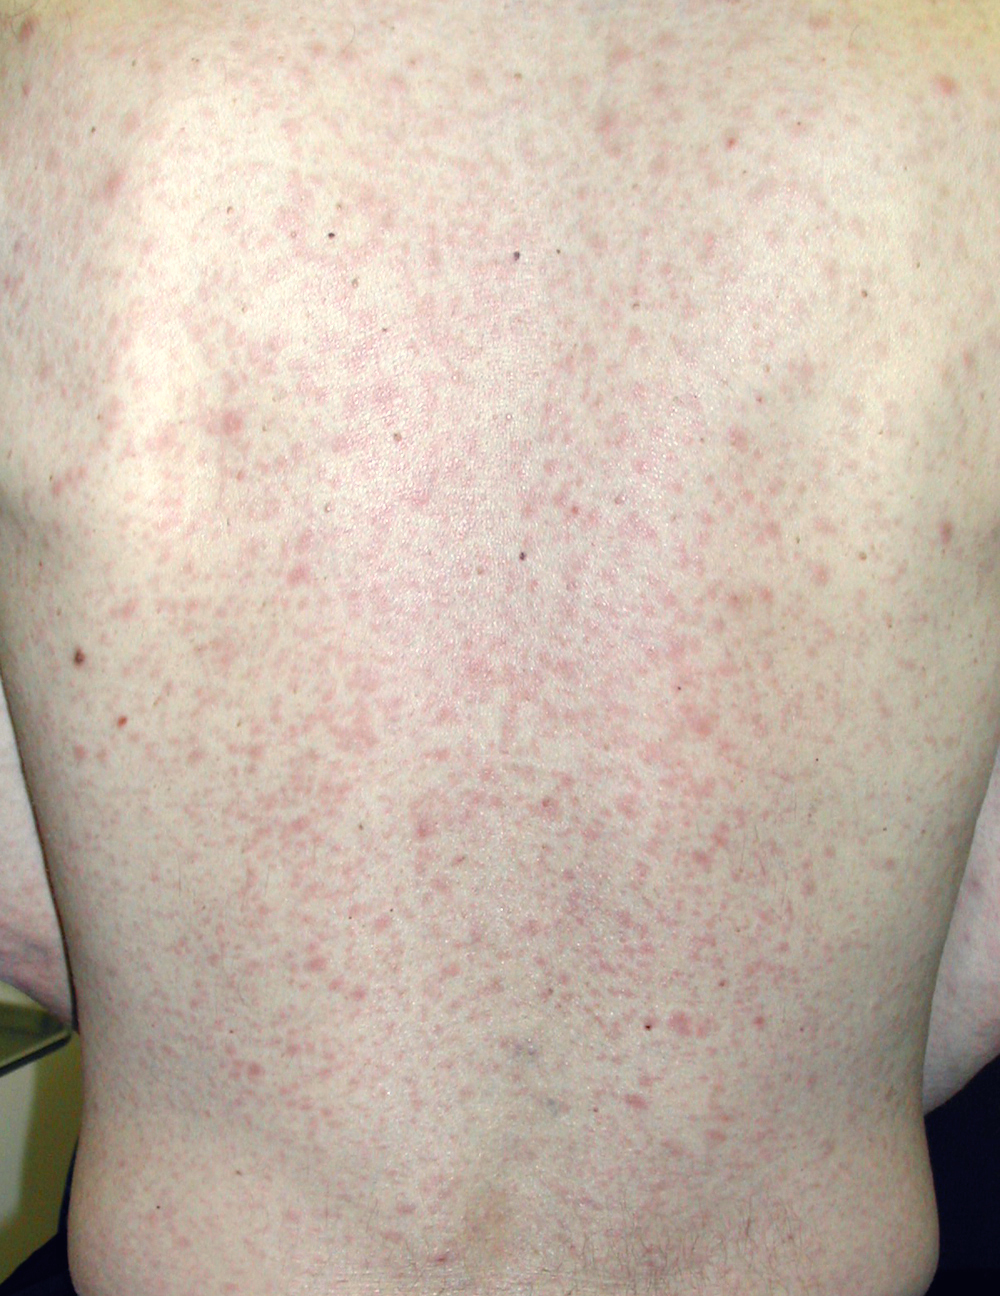 This patient with secondary syphilis developed a diffuse erythematous macular rash prominent on the chest and back.<div>Source: photograph by David H. Spach, MD</div>